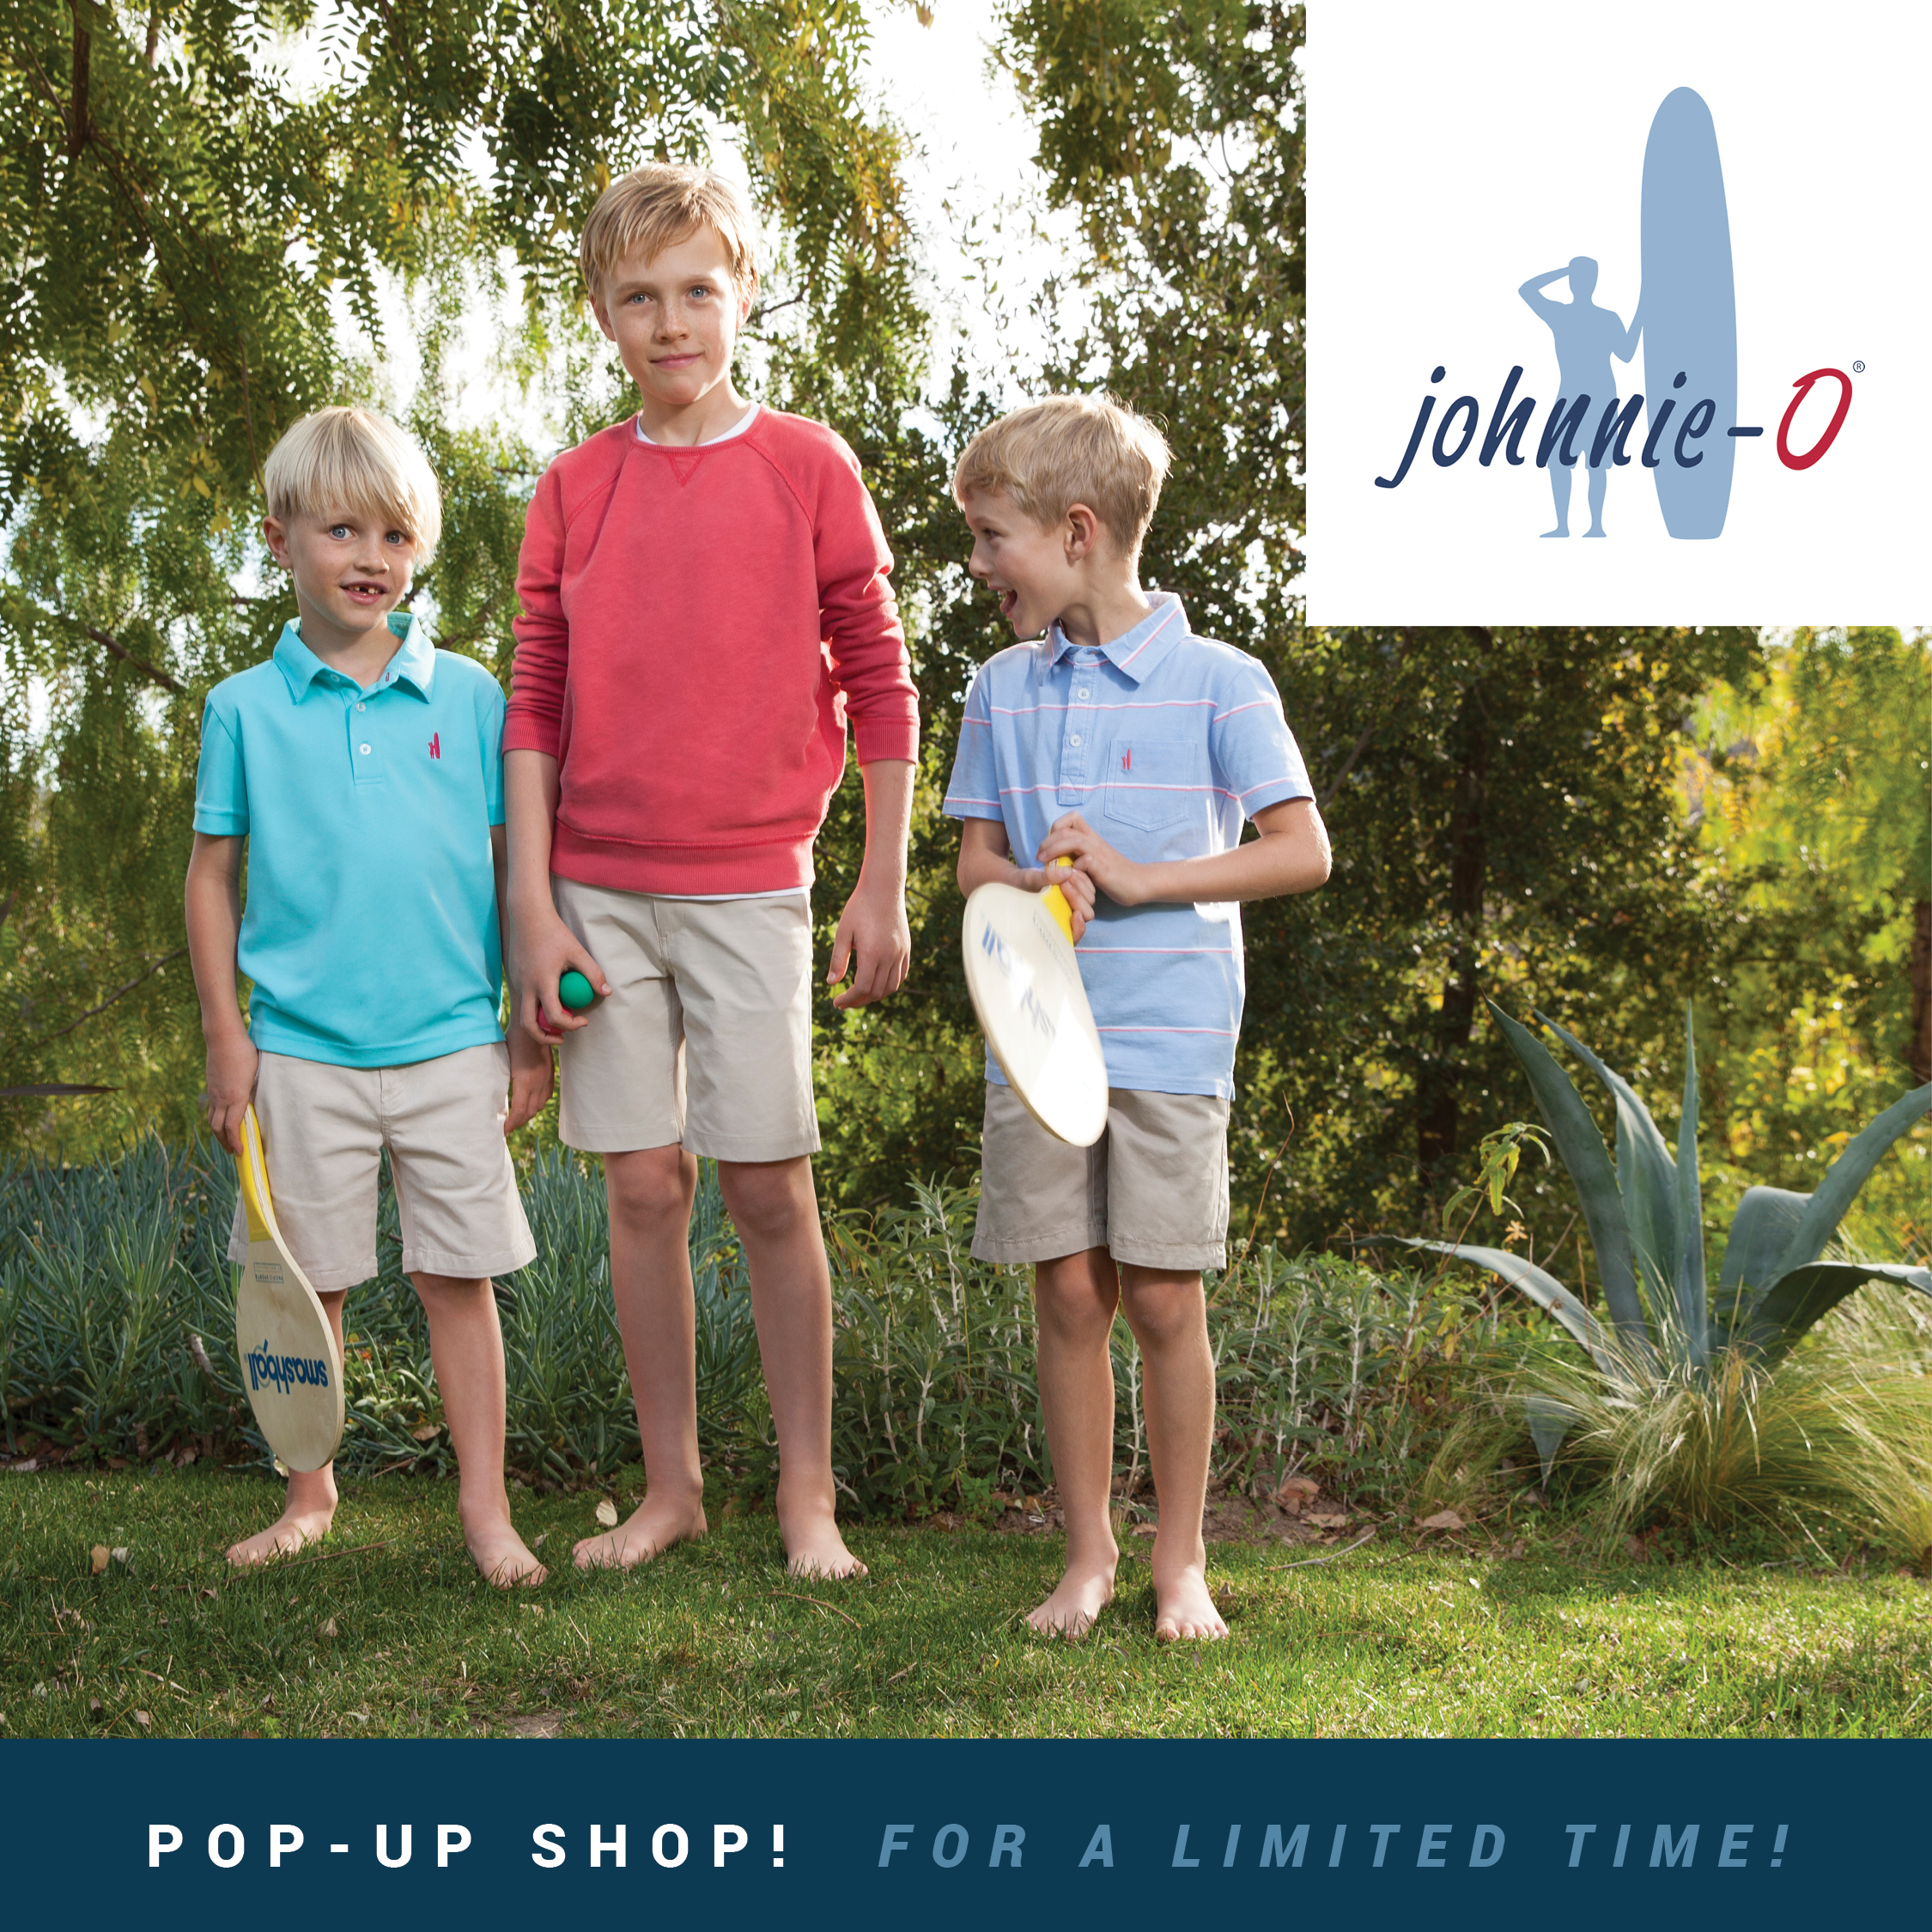 For a limited time shop our Johhnie-O Boys Pop-Up Shop at the Ladies Store!